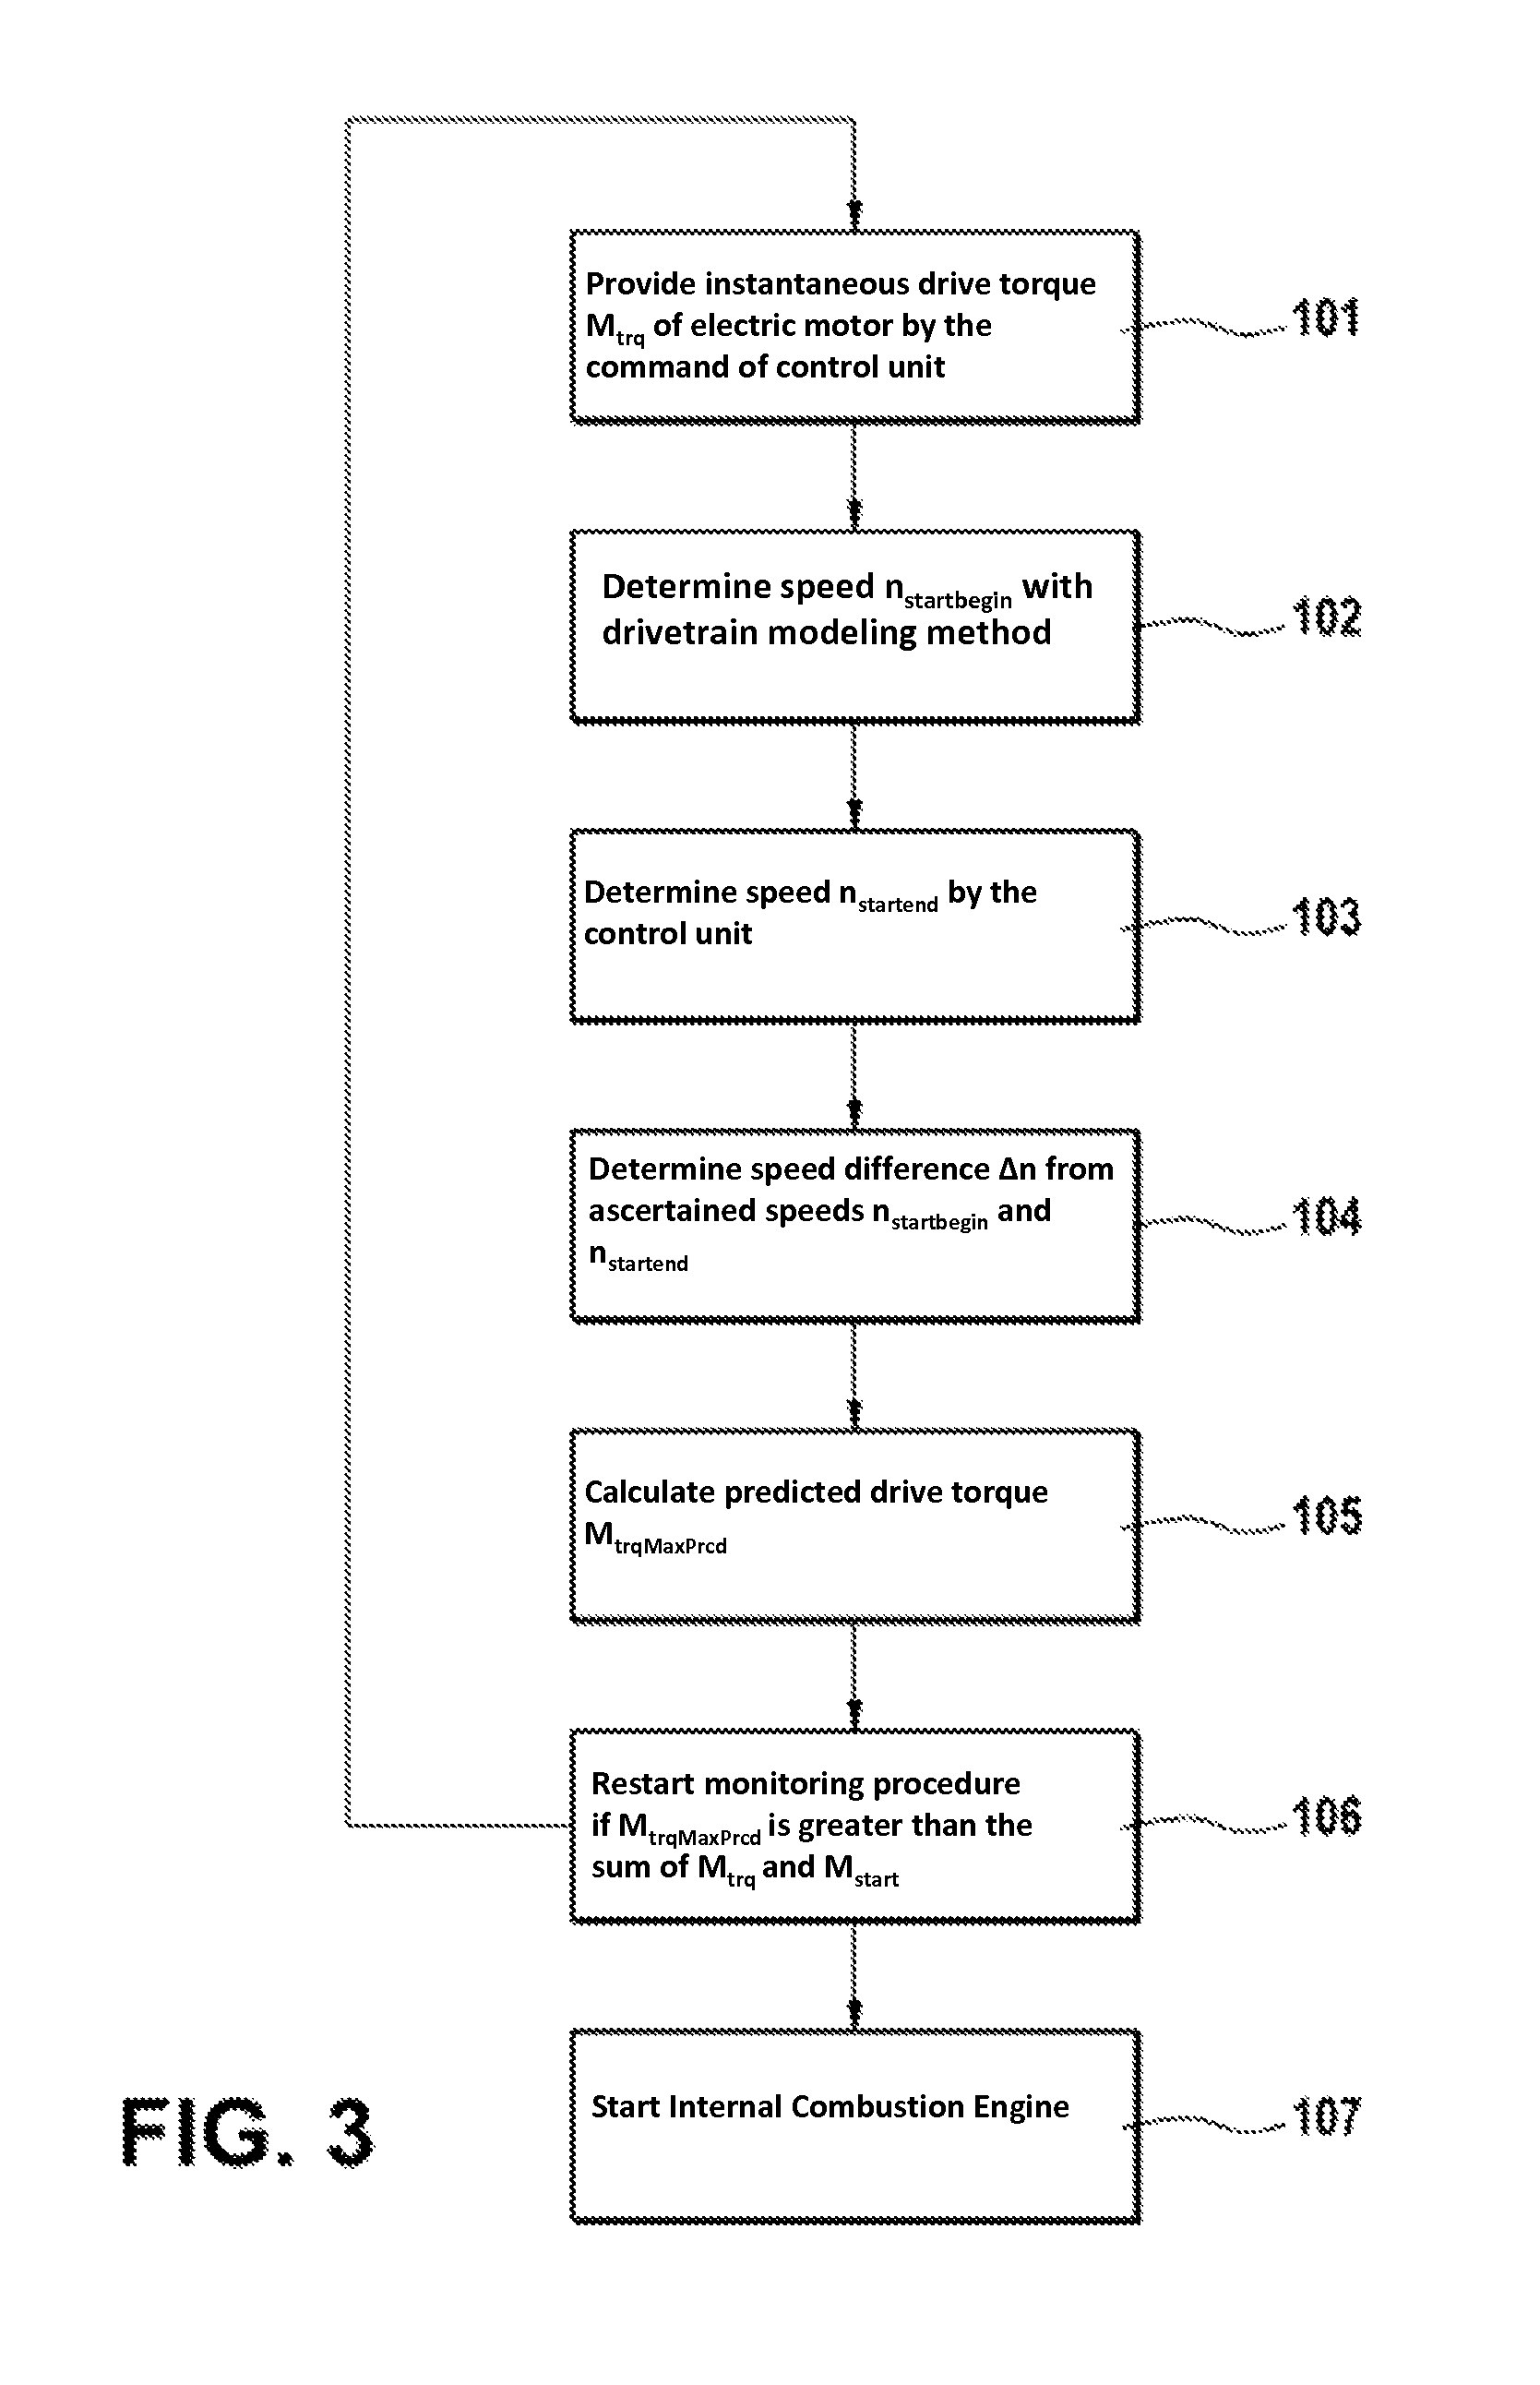 US8738205B2 - Method and device for determining the